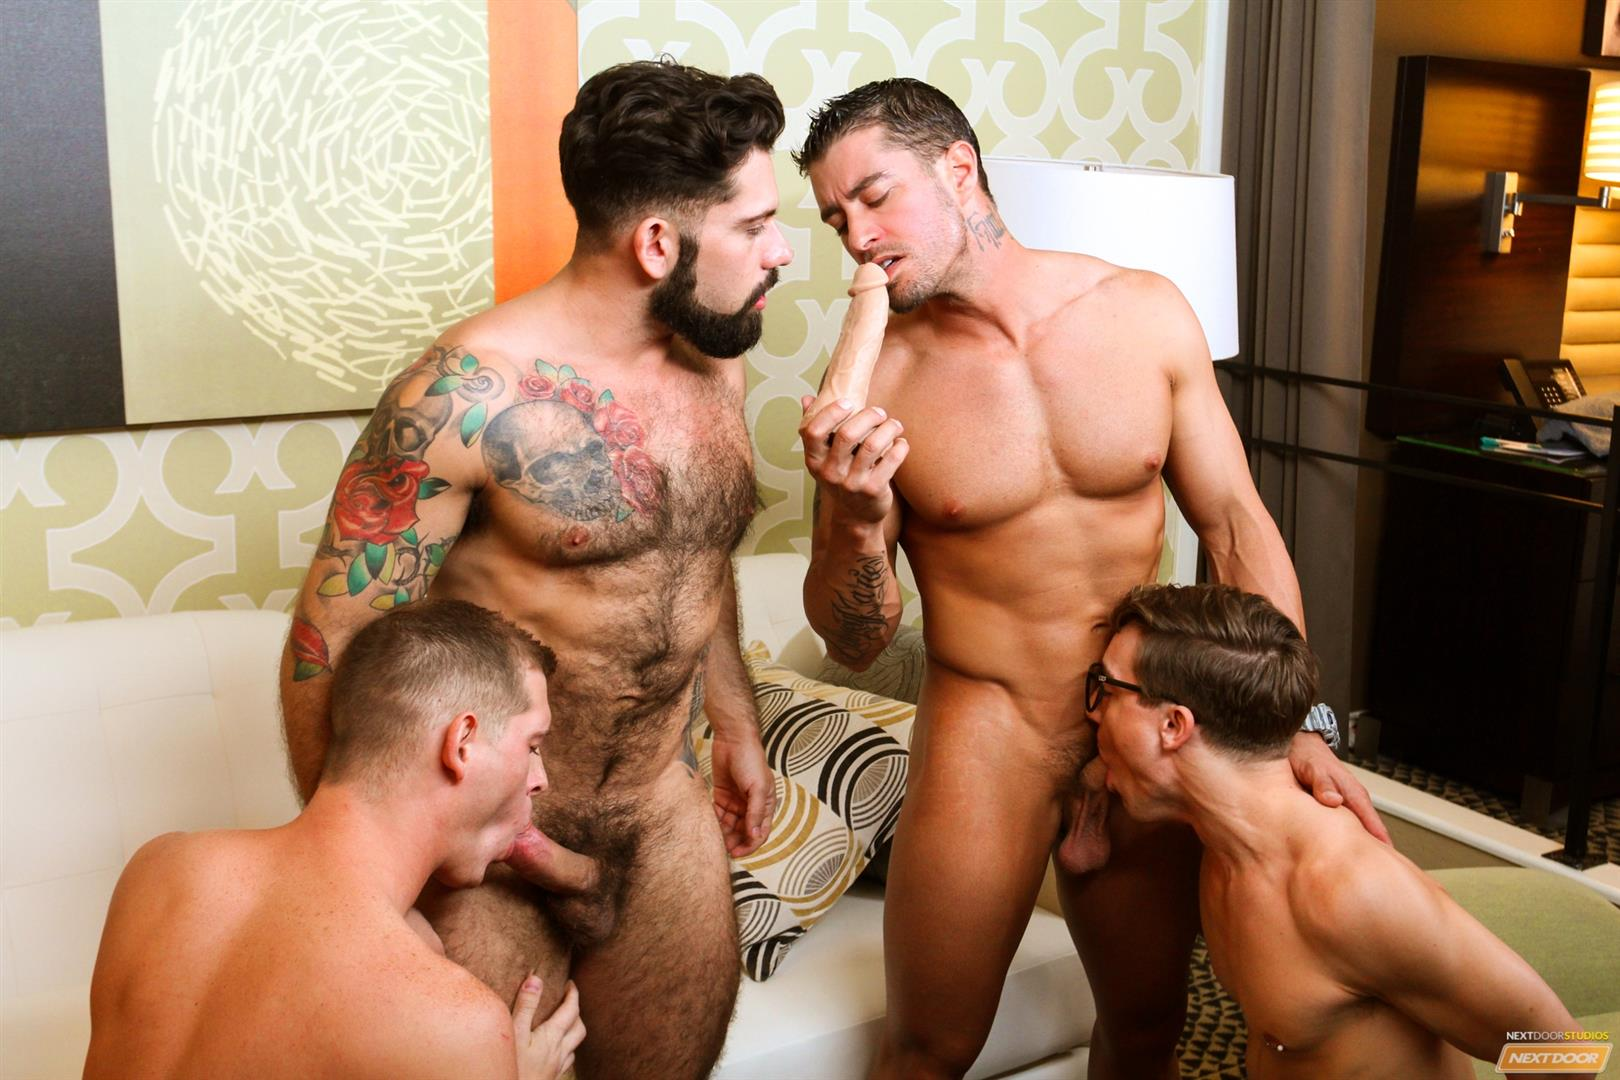 Cody Cummings and Tyler Morgan and Alessandro Del Torro Cock Sucking Lessons Amateur Gay Porn 14 Cody Cummings Gives The Boys Cock Sucking Lessons